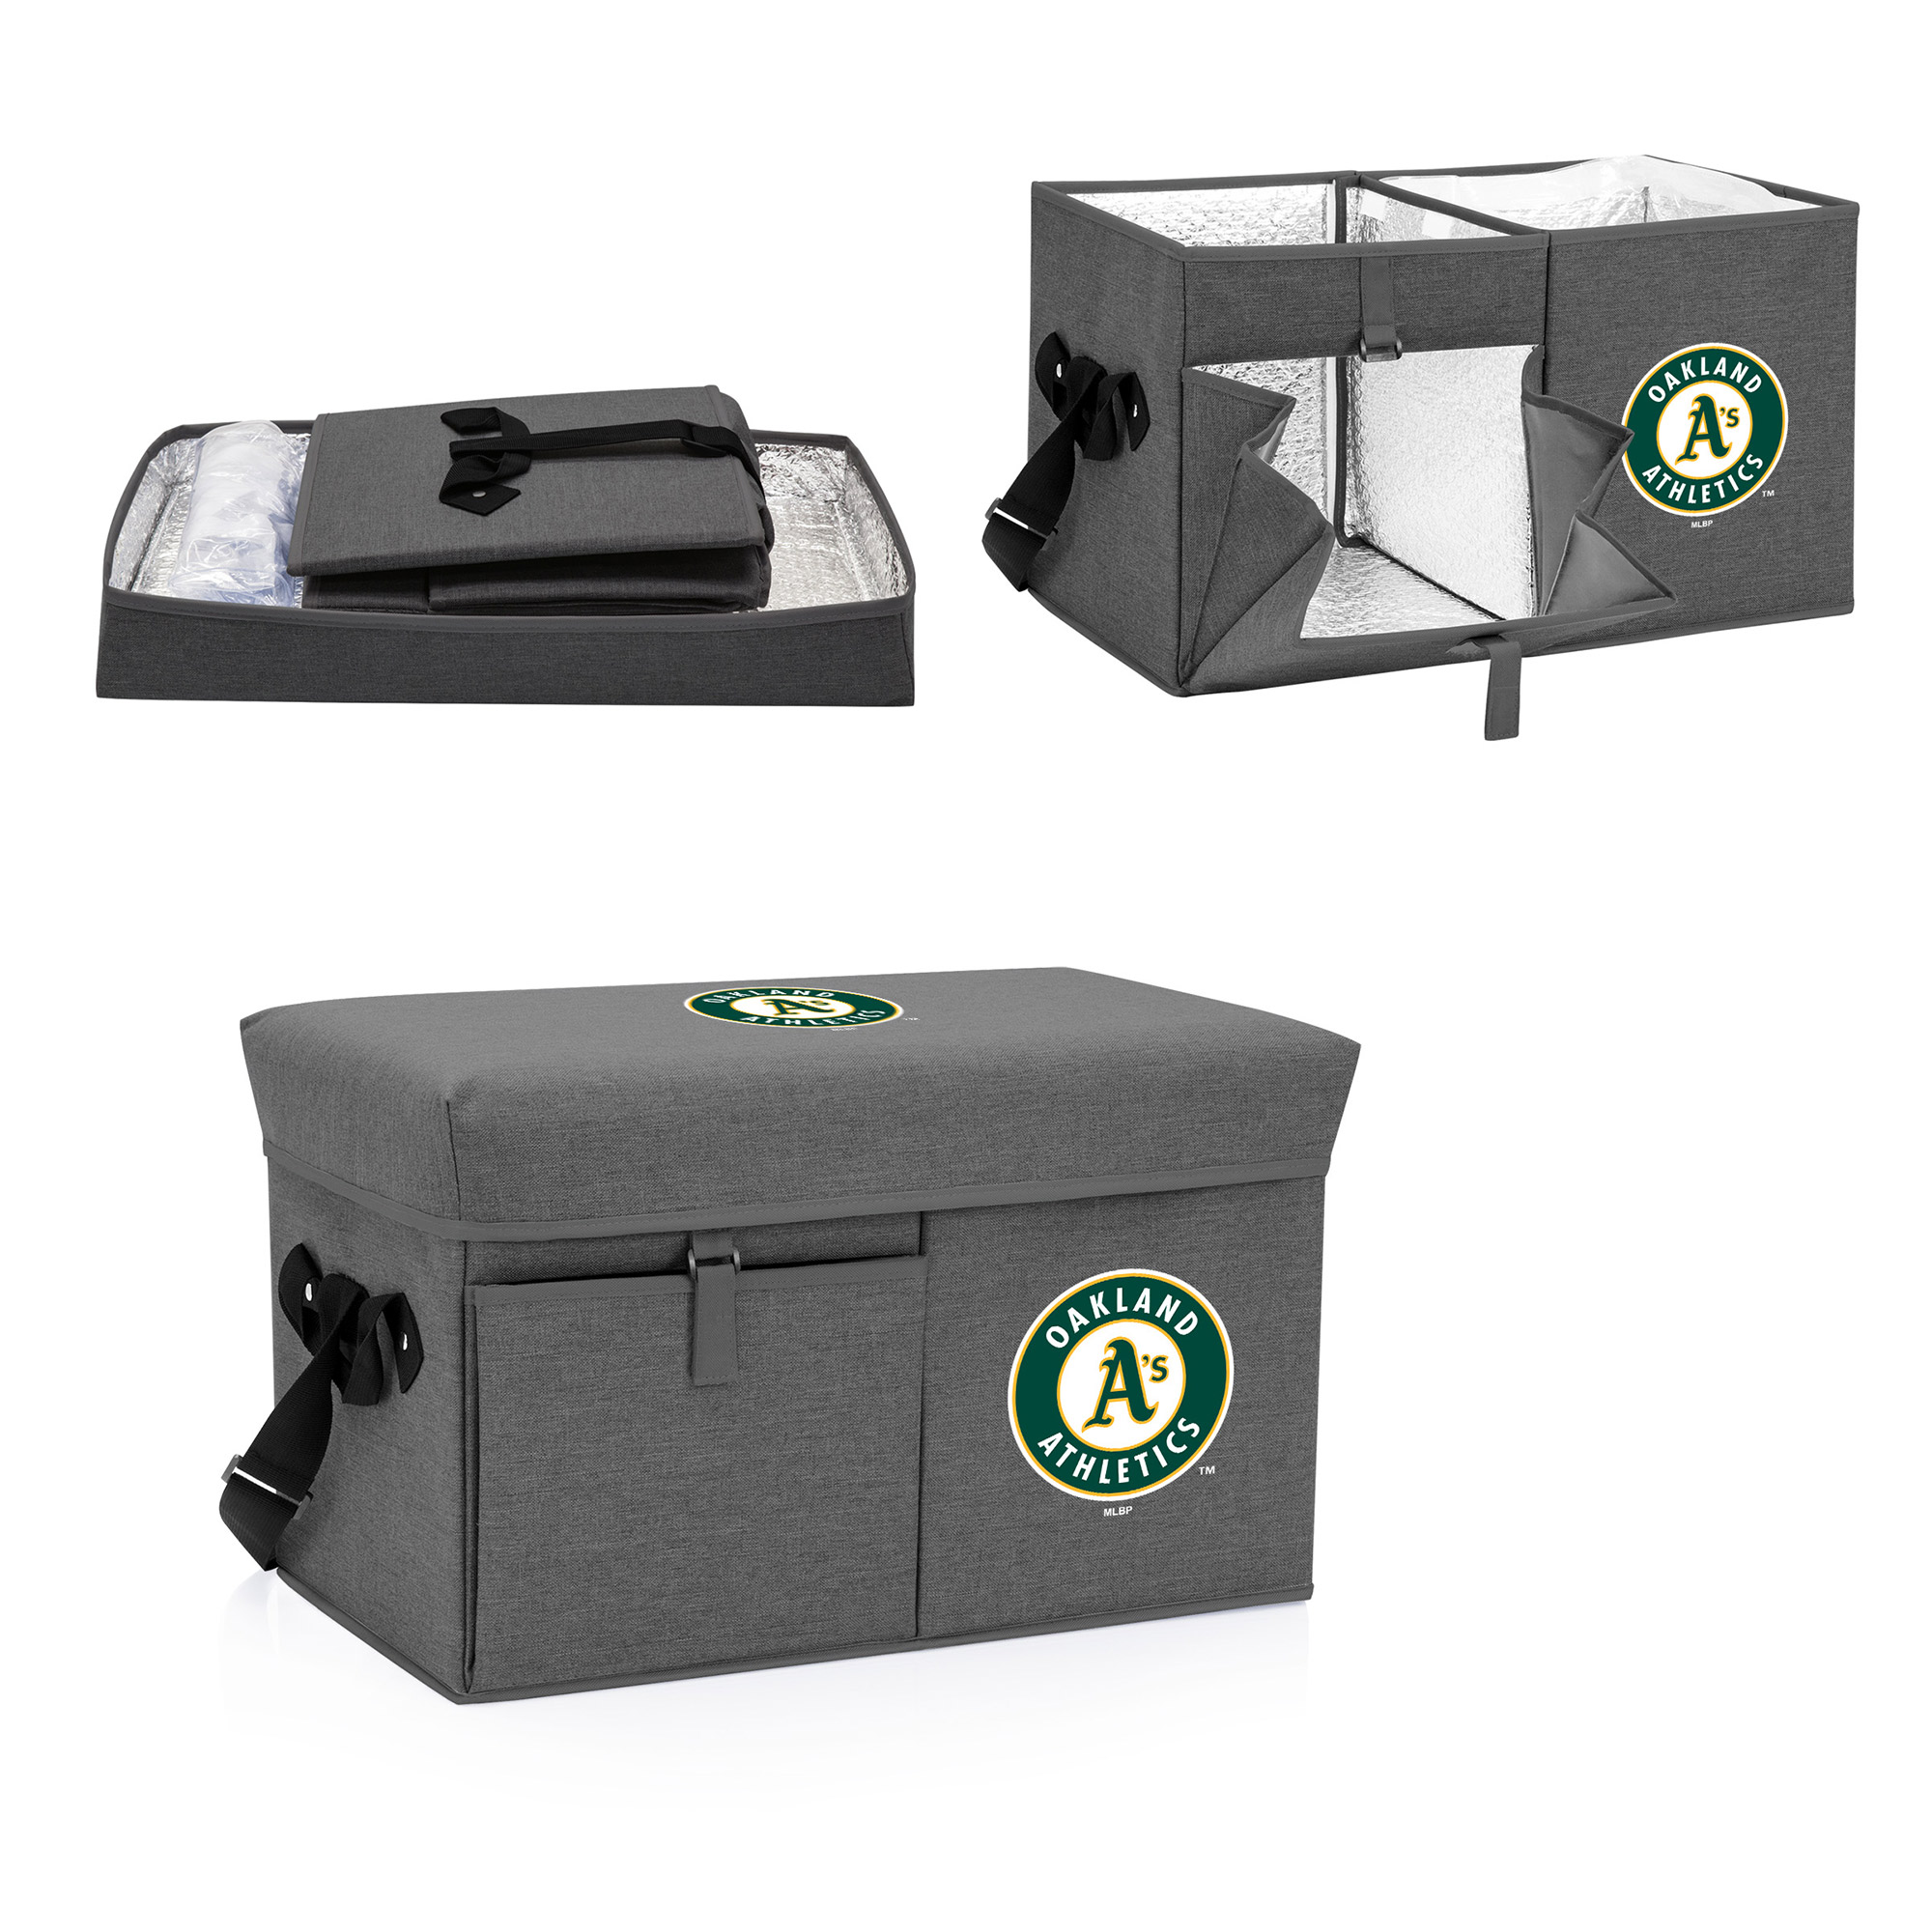 Oakland Athletics Ottoman Cooler & Seat - Gray - No Size